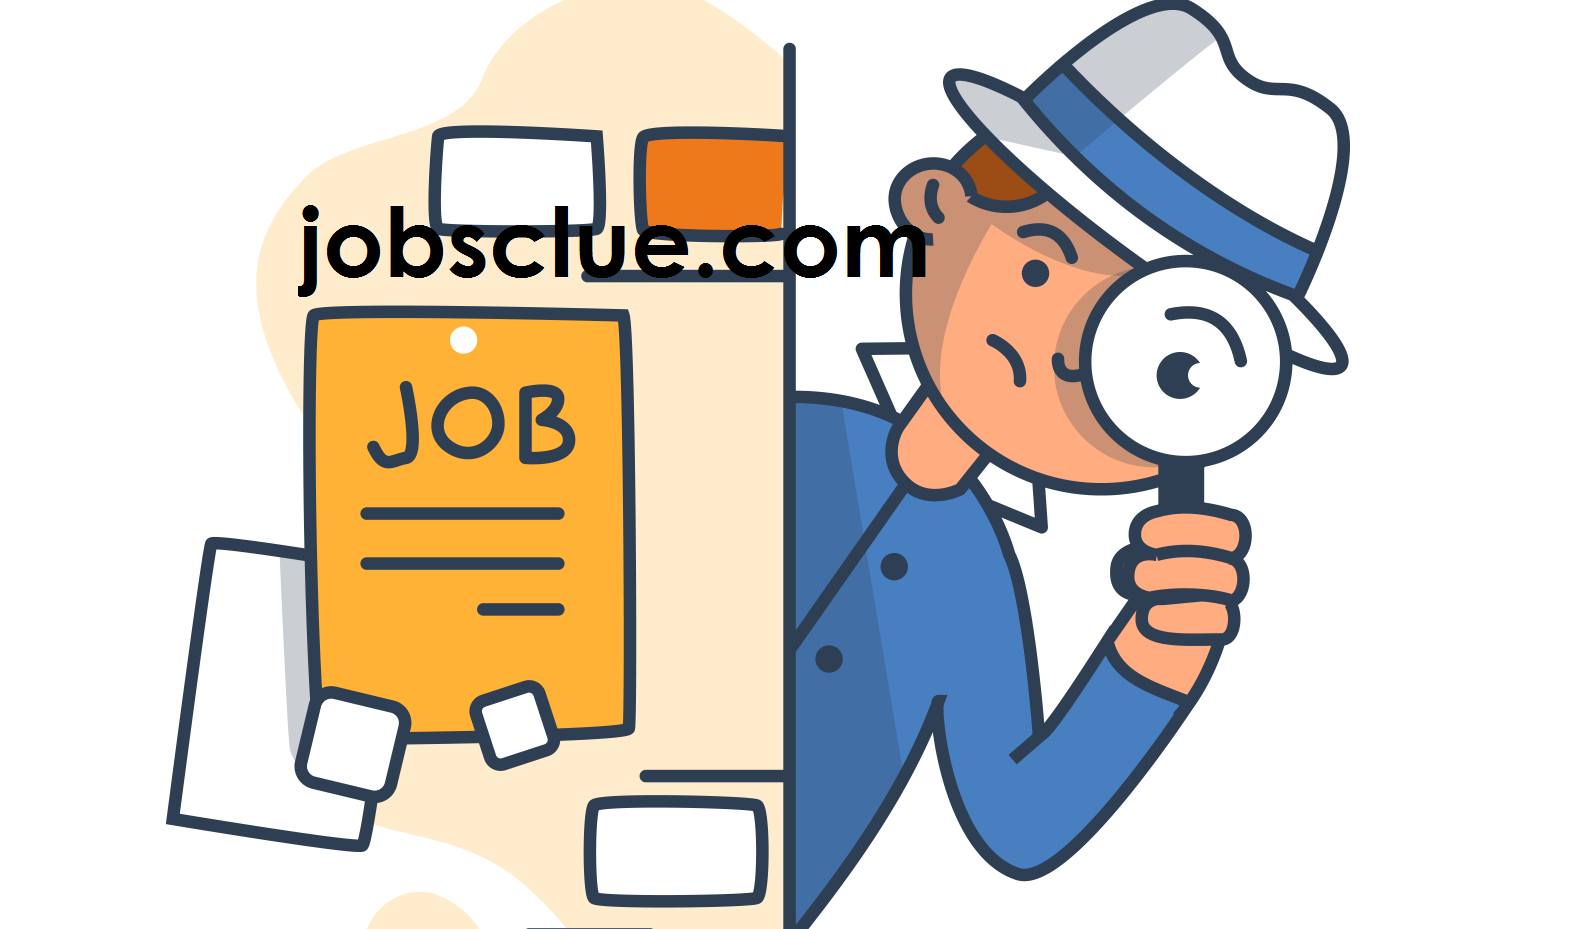 At get latest job updates & opportunities in